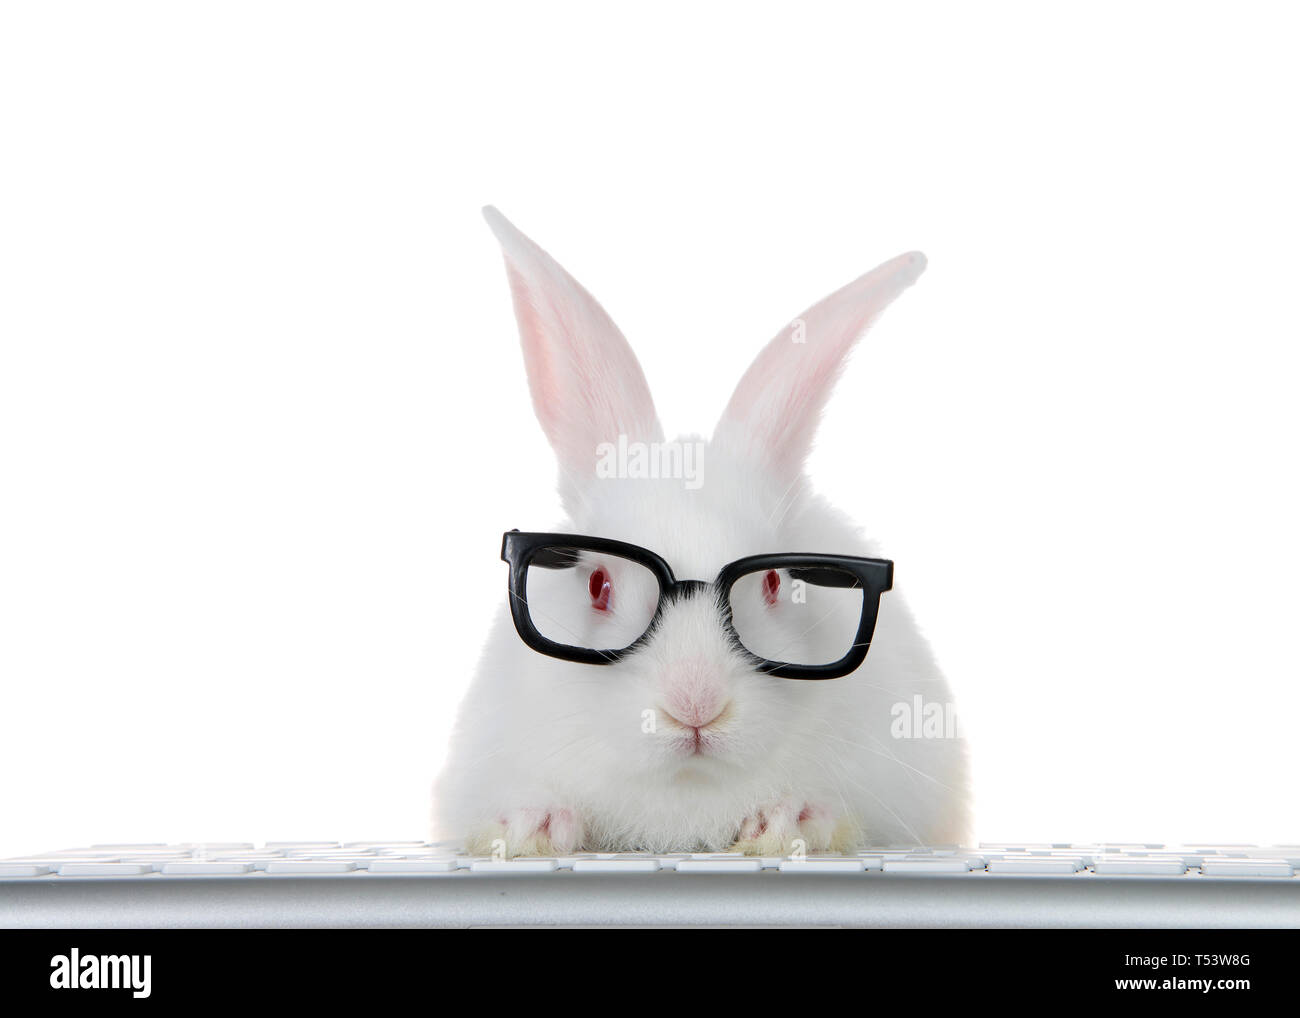 Portrait of an adorable white albino baby bunny rabbit wearing intelligent geeky looking black glasses, paws on computer keyboard looking directly at  Stock Photo